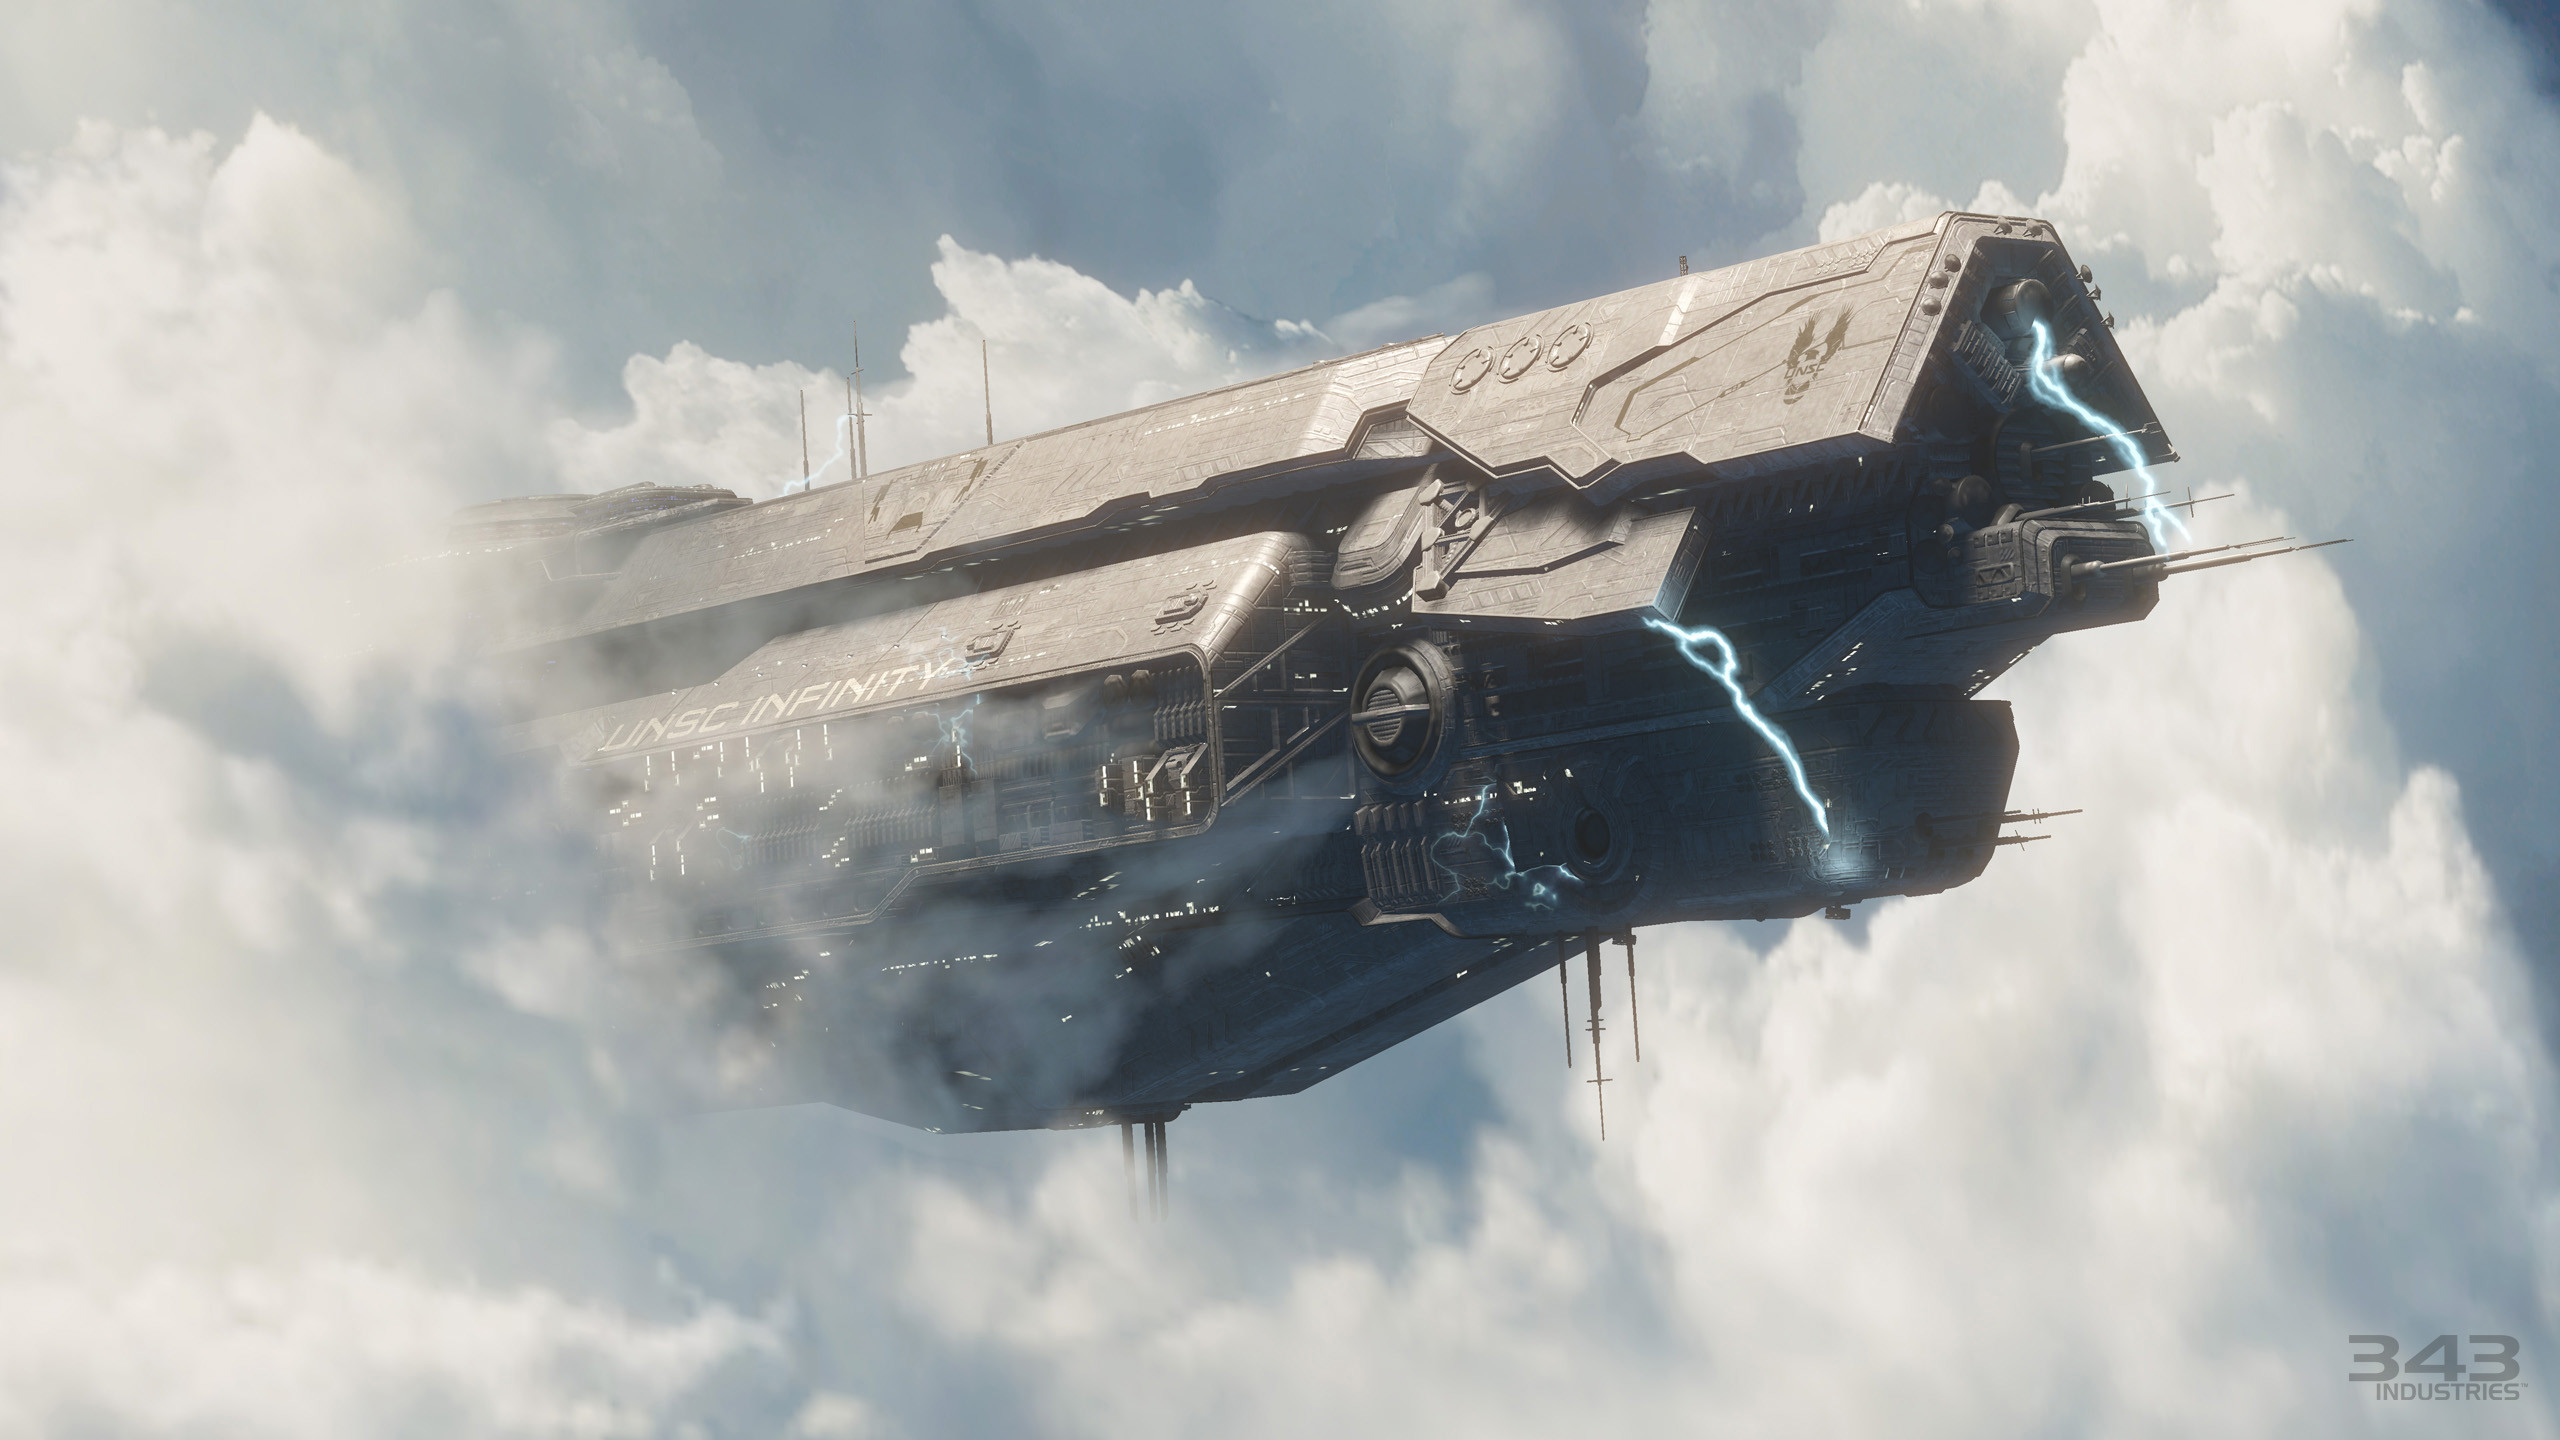 Res: 2560x1440, Computerspiele - Halo Science-Fiction Schiff Master Chief Halo 4 Wallpaper